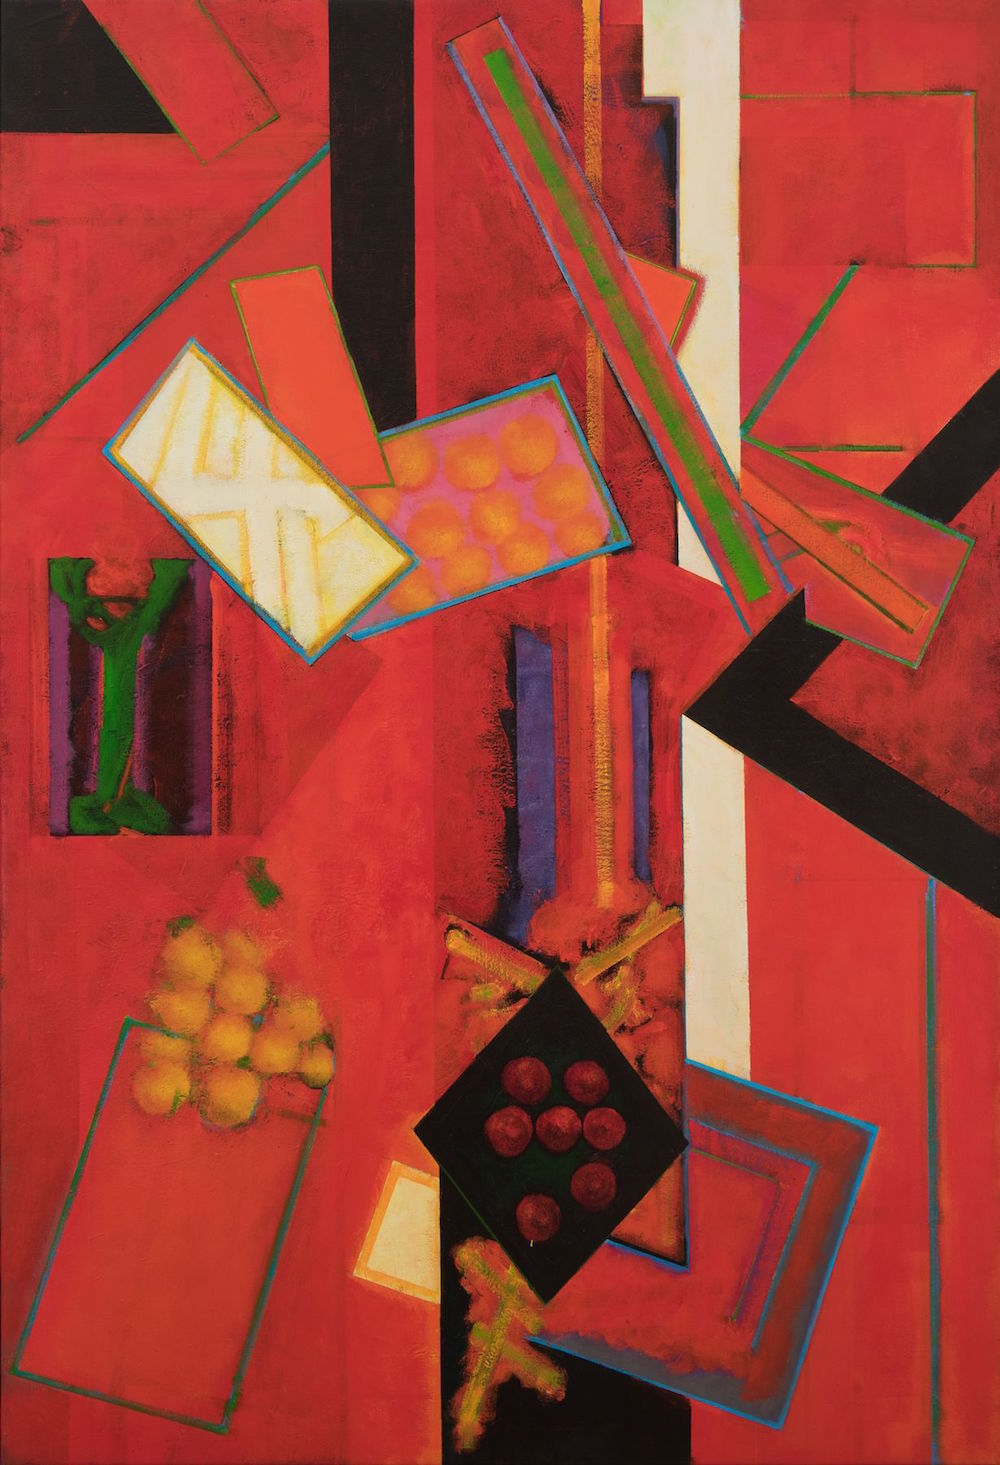 William Scharf, The Martyr's Ladder and the Harm Angel, 1998–2002, acrylic on canvas, 69 x 47.""